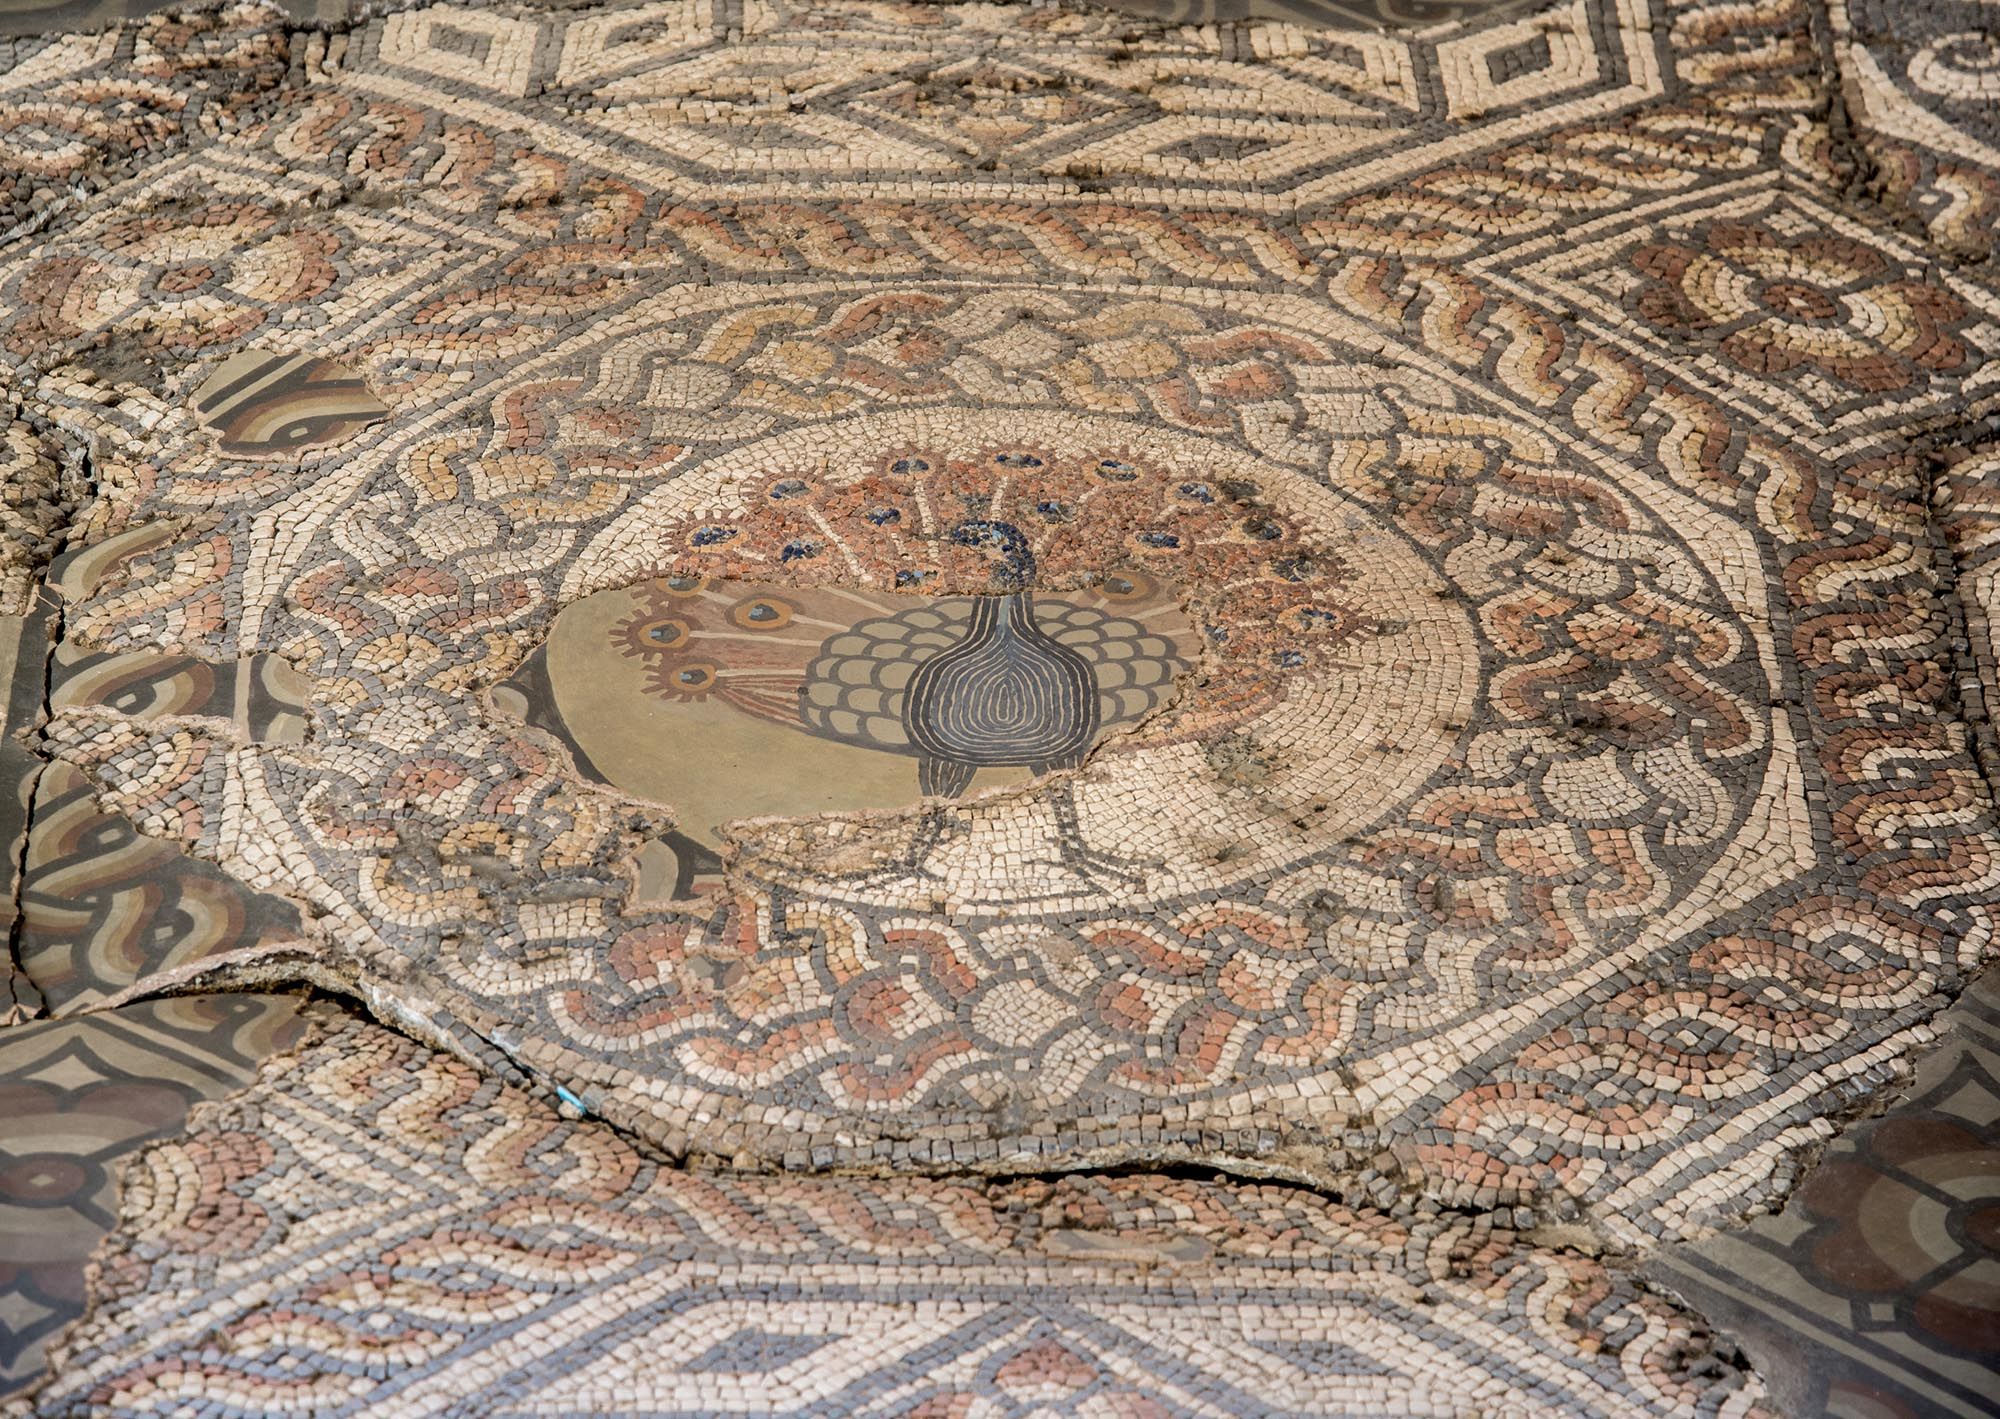 The central panel of the 2nd-century Peacock Mosaic Pavement discovered in 1898 at St Nicholas Street, now part of St Nicholas Circle. It came from a Roman town house, partly excavated in 1968 -